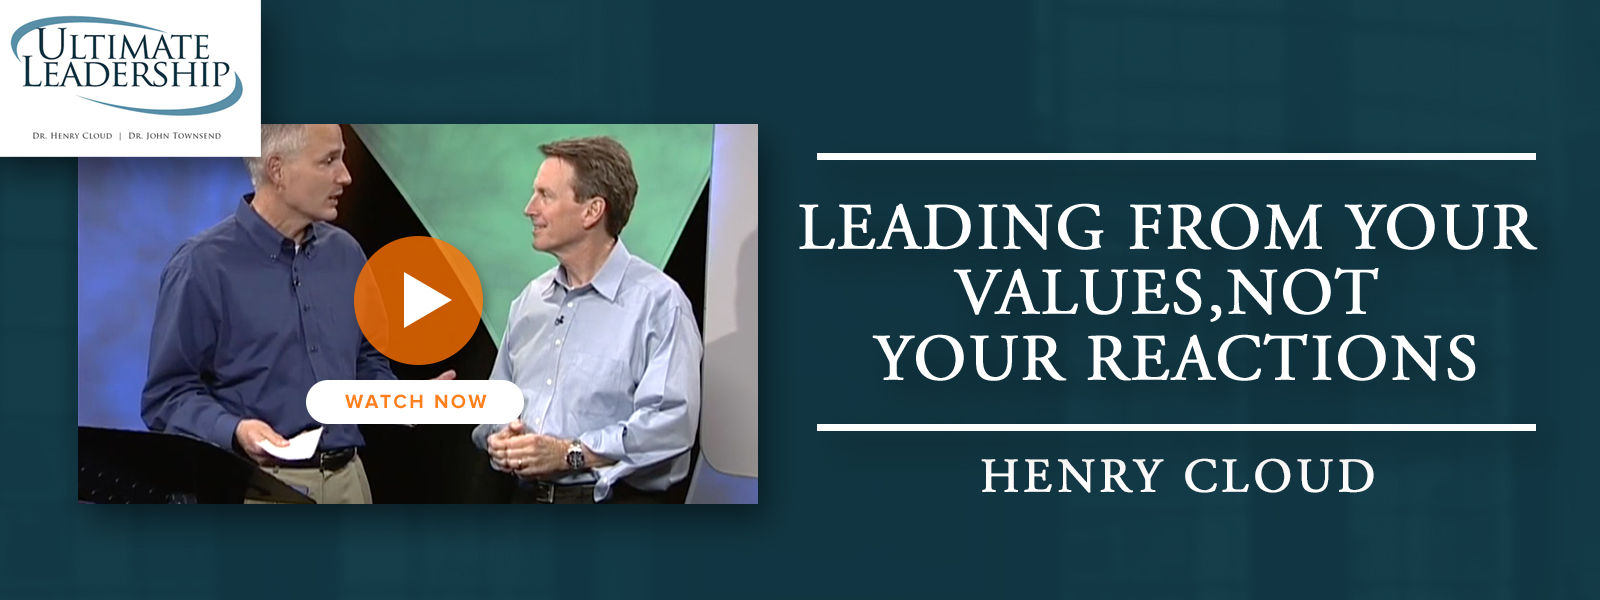 Leading from Your Values, Not Your Reactions